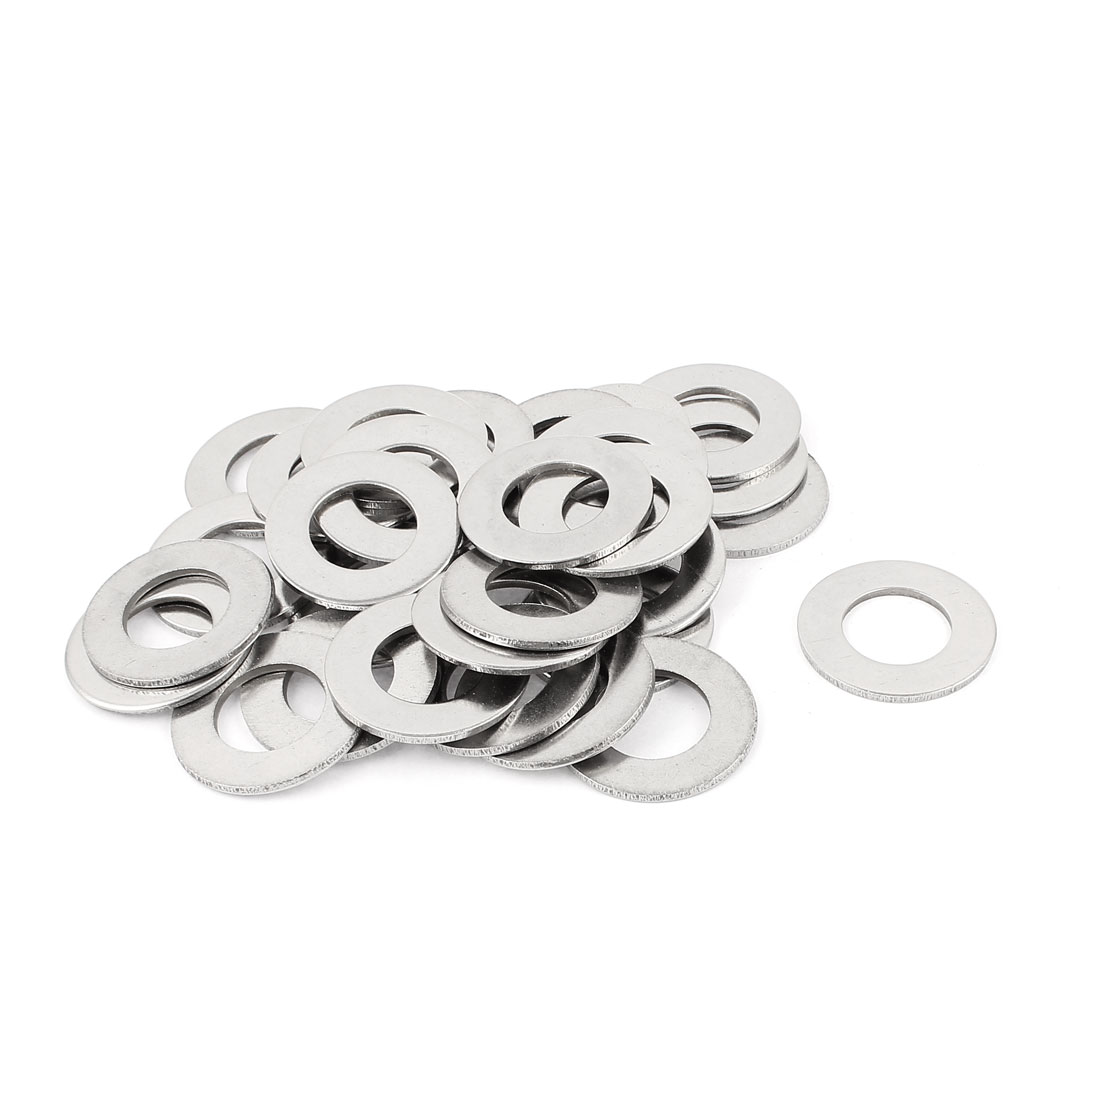 Spring Screw Stainless Steel M22 Flat Washer Spacer Fastener 30pcs